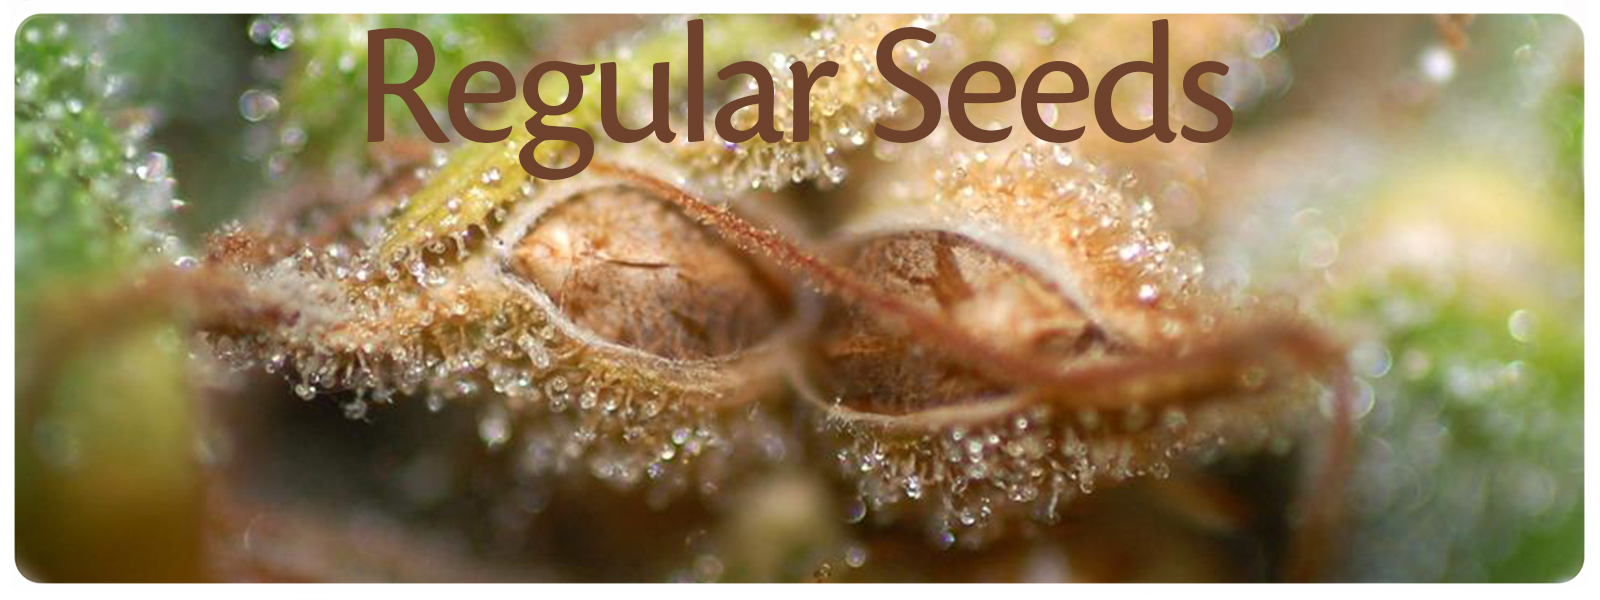 regular cannabis seeds from different breeders